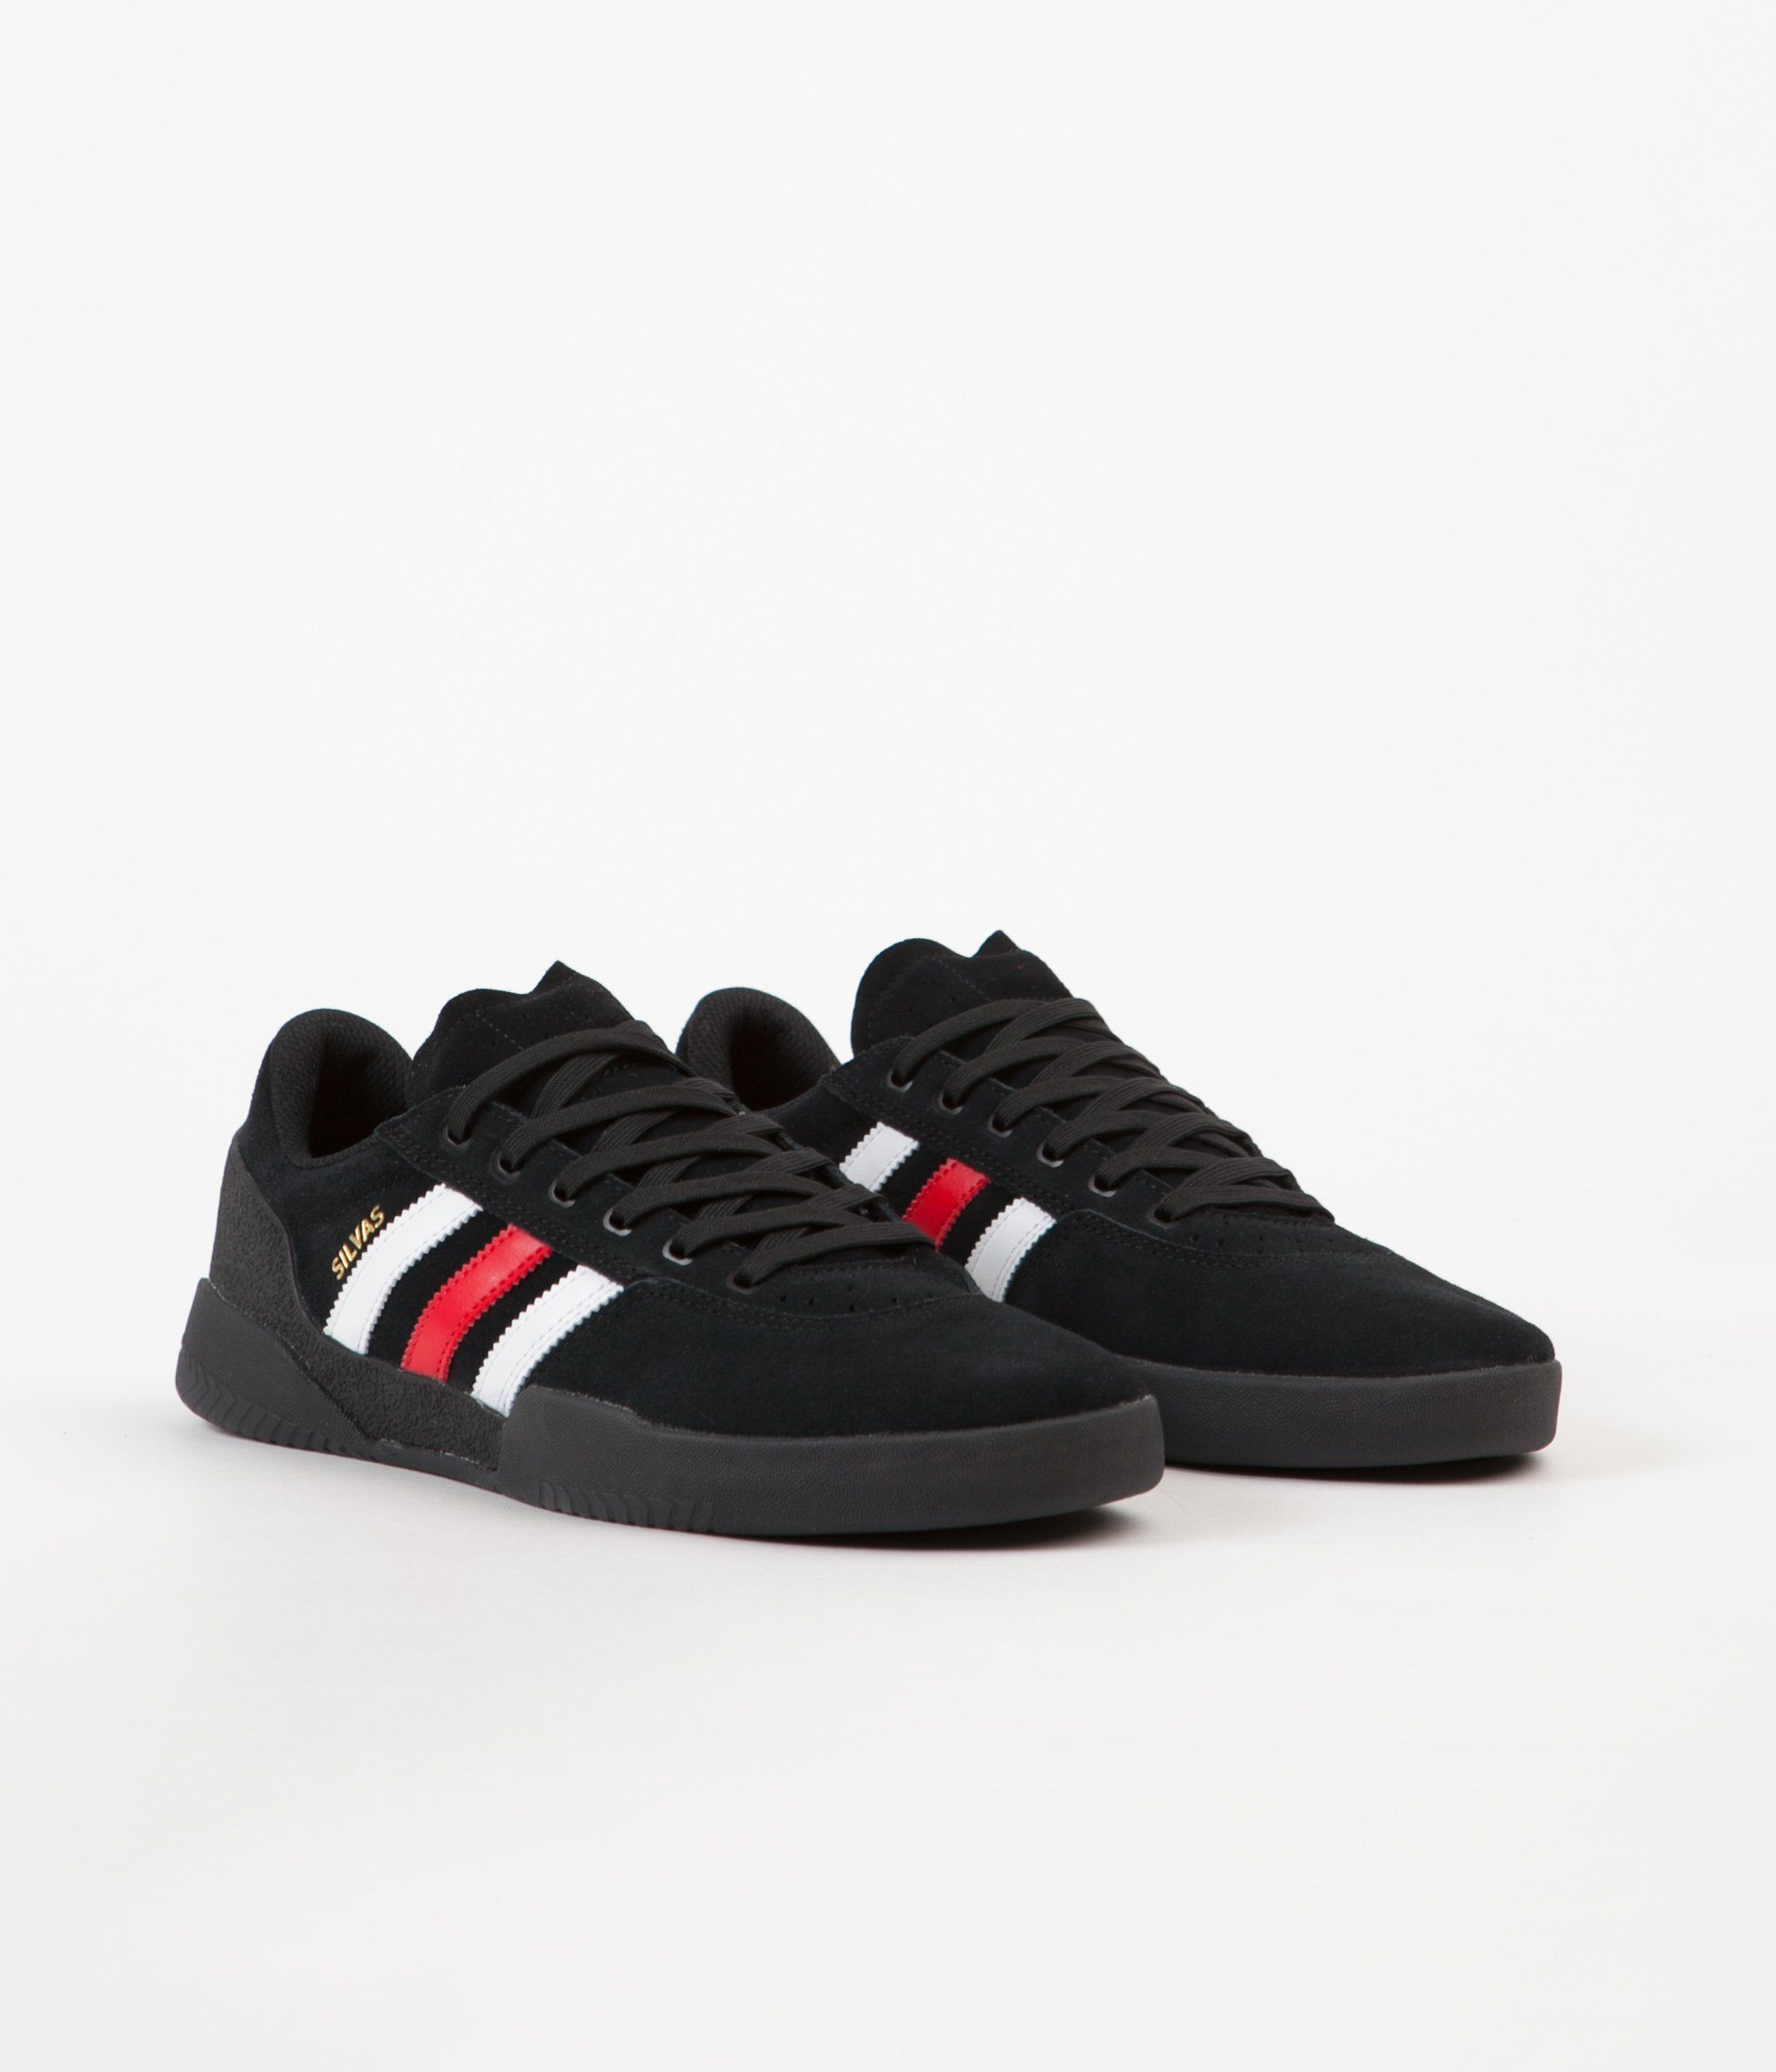 new style 24ed0 95147 Adidas Miles Silvas City Cup Shoes - Core Black  Scarlet  FTW White